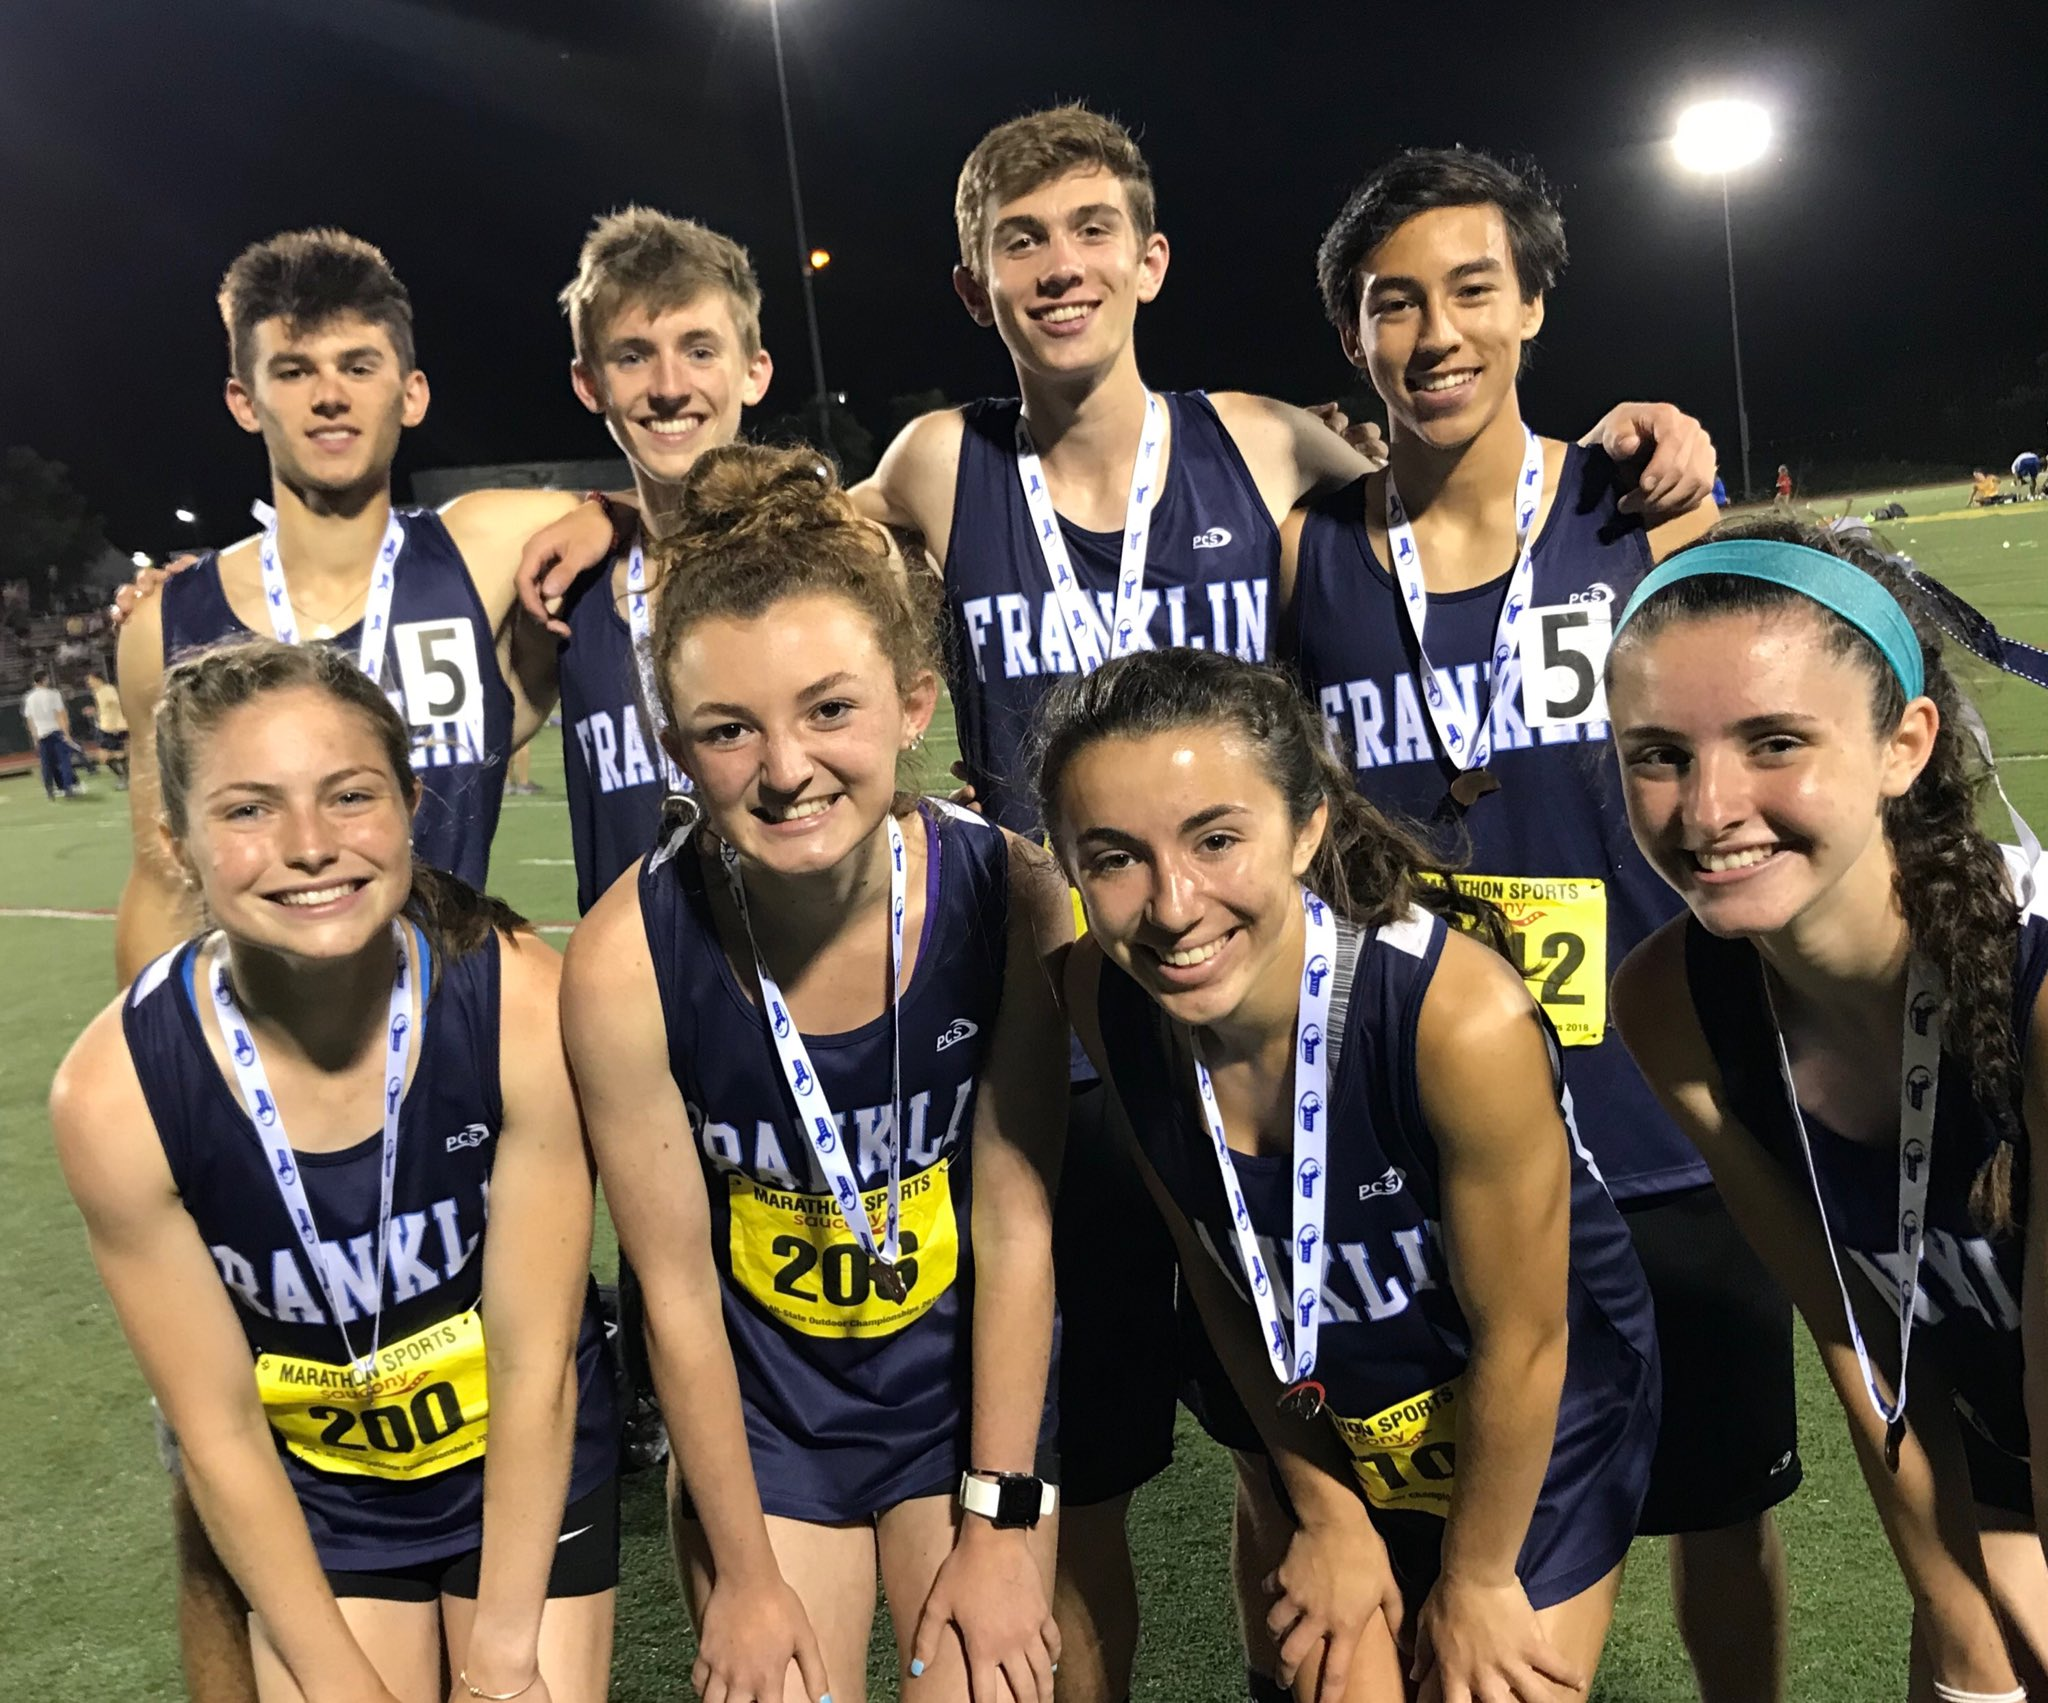 And to top off the night both the boys (8:00.4 - 6th) and girls (9:17.4 - 2nd) 4x800 teams set new school records! Quite the day for FHS track at the state meet